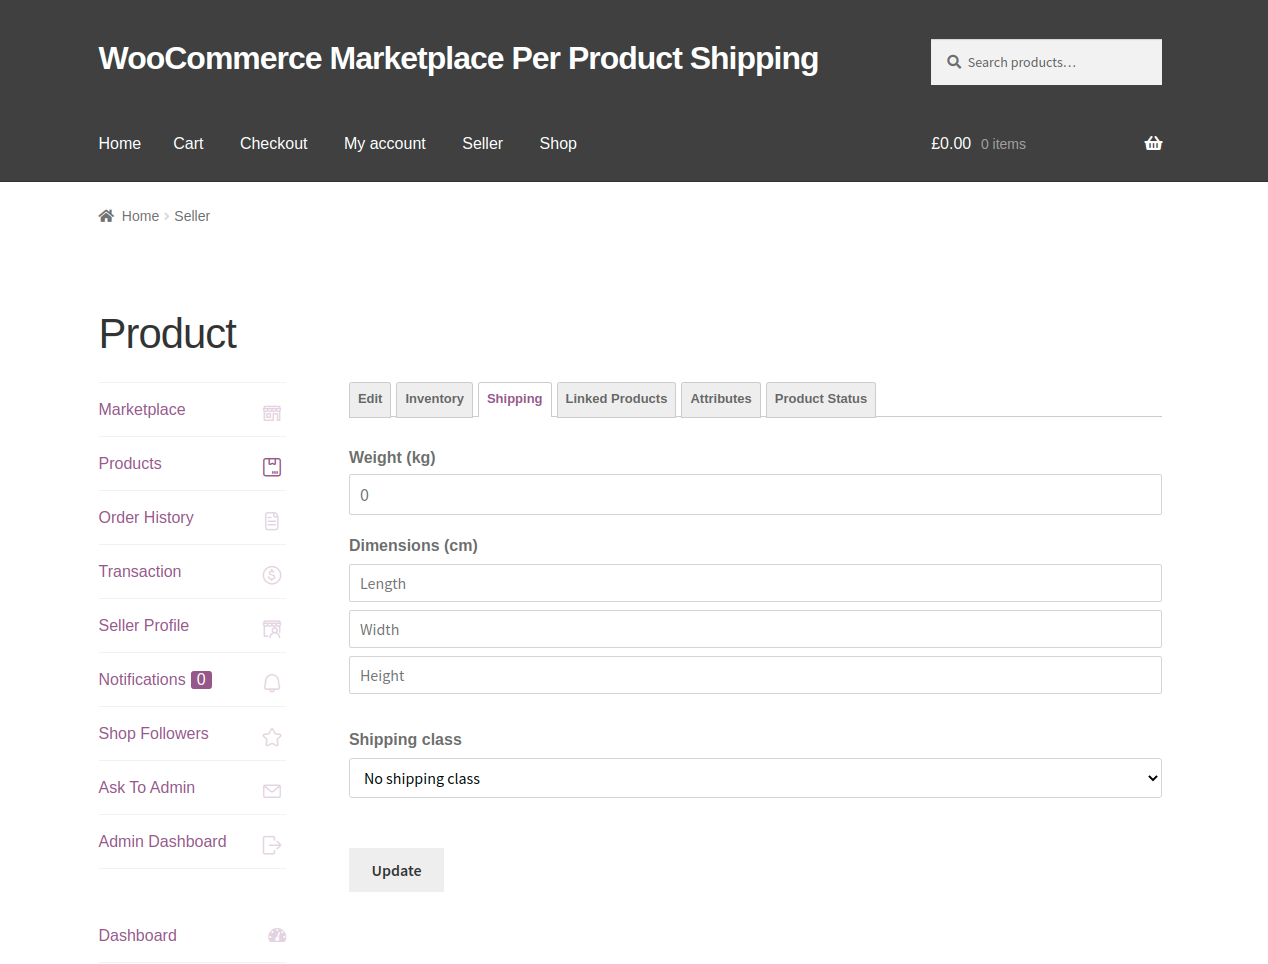 webkul-woocommerce-marketplace-per-product-shipping-not-visible-at-seller-end-on-selecting-admin-shipping